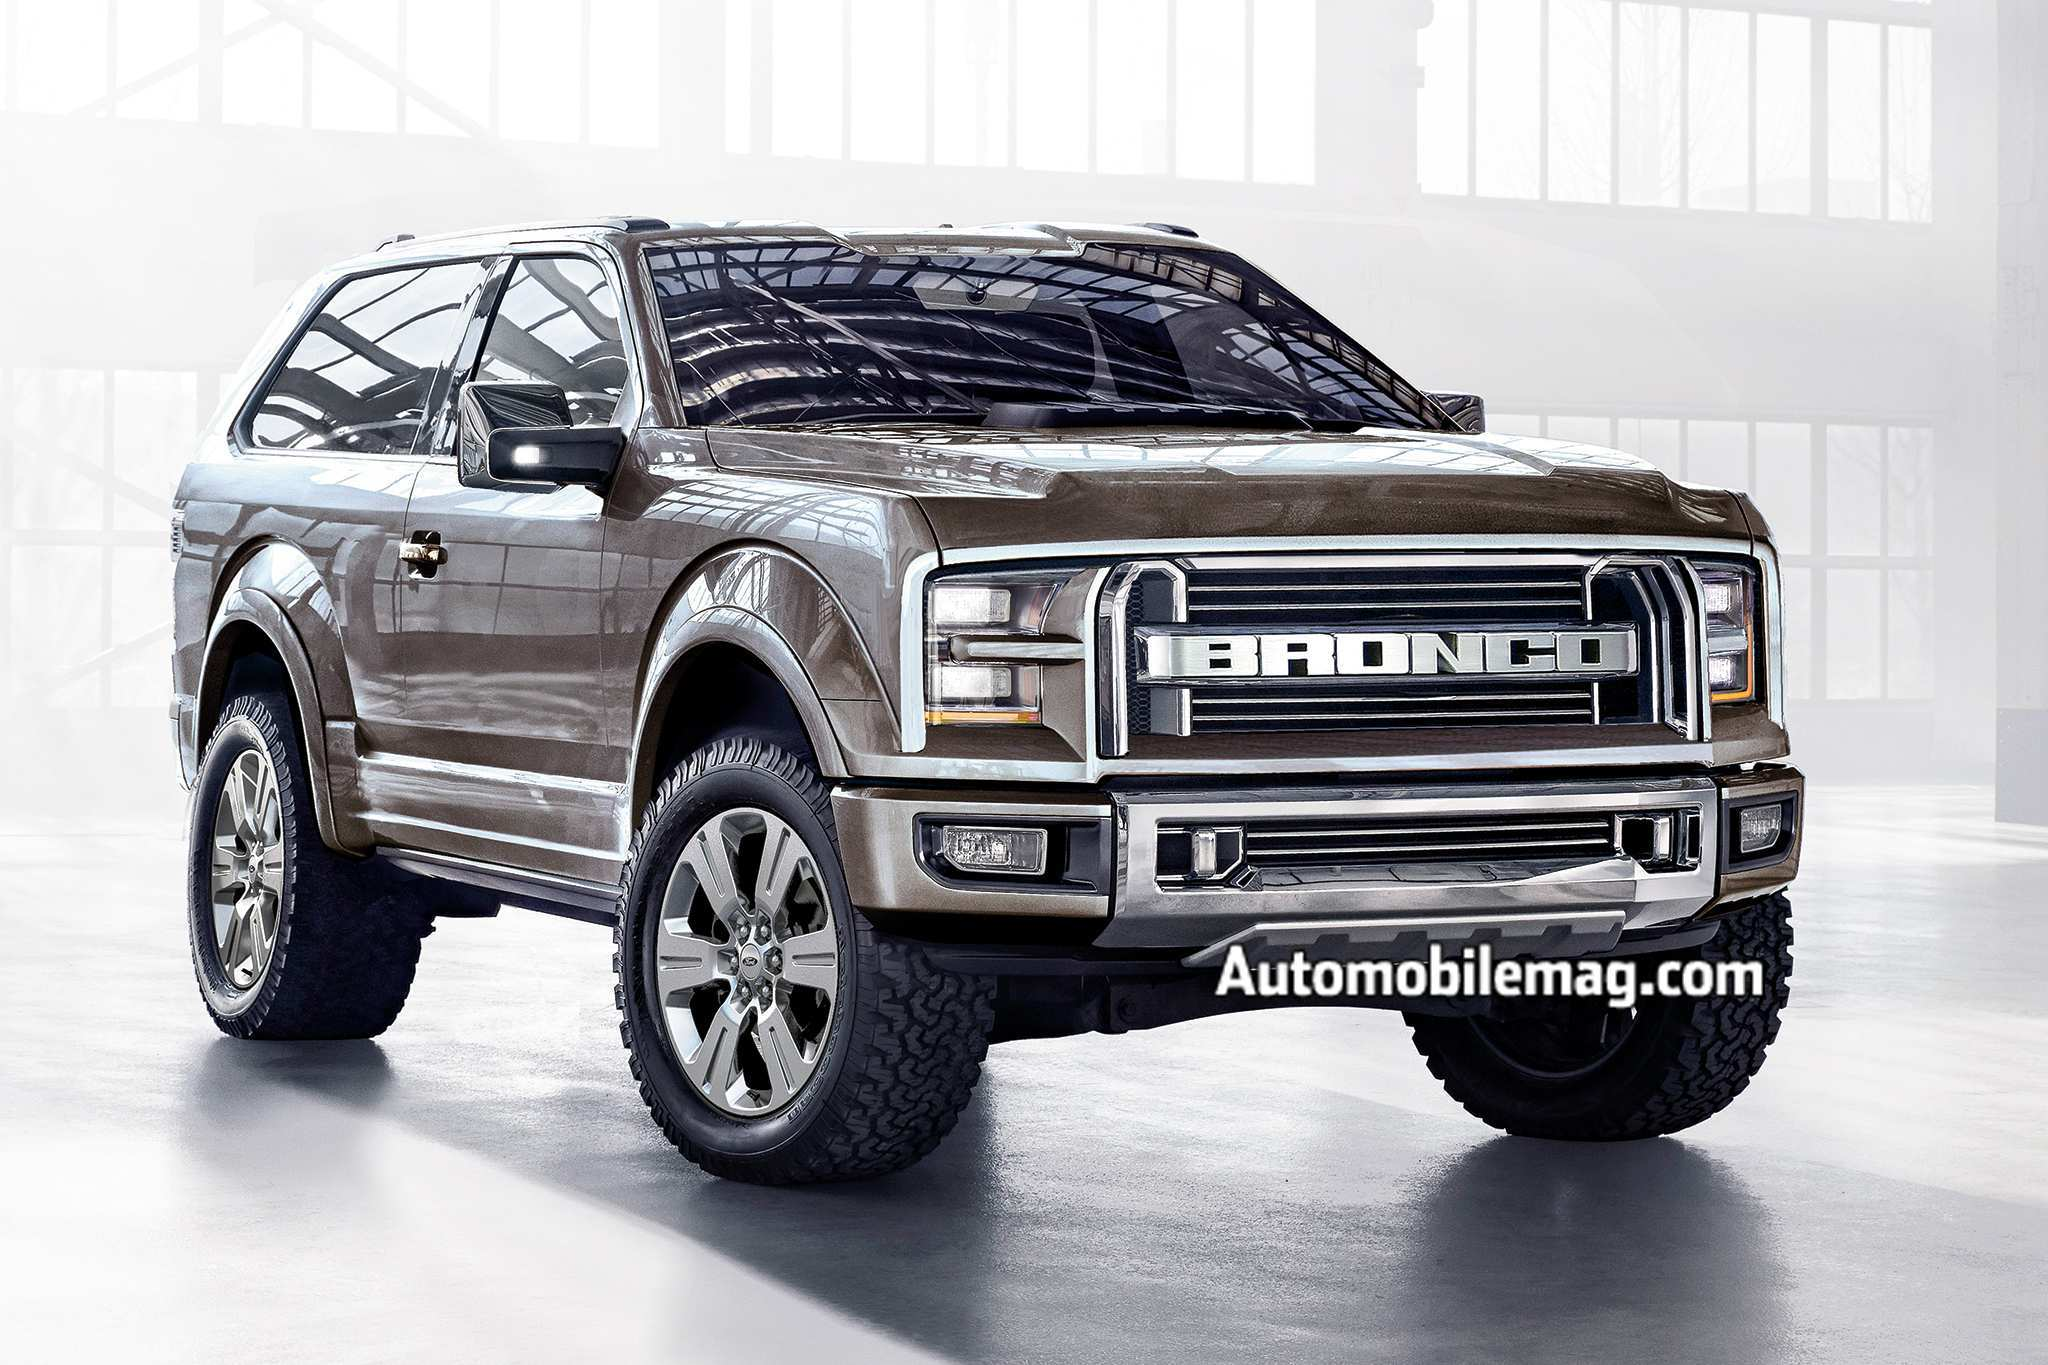 51 The 2020 Ford Bronco Wallpaper Images with 2020 Ford Bronco Wallpaper